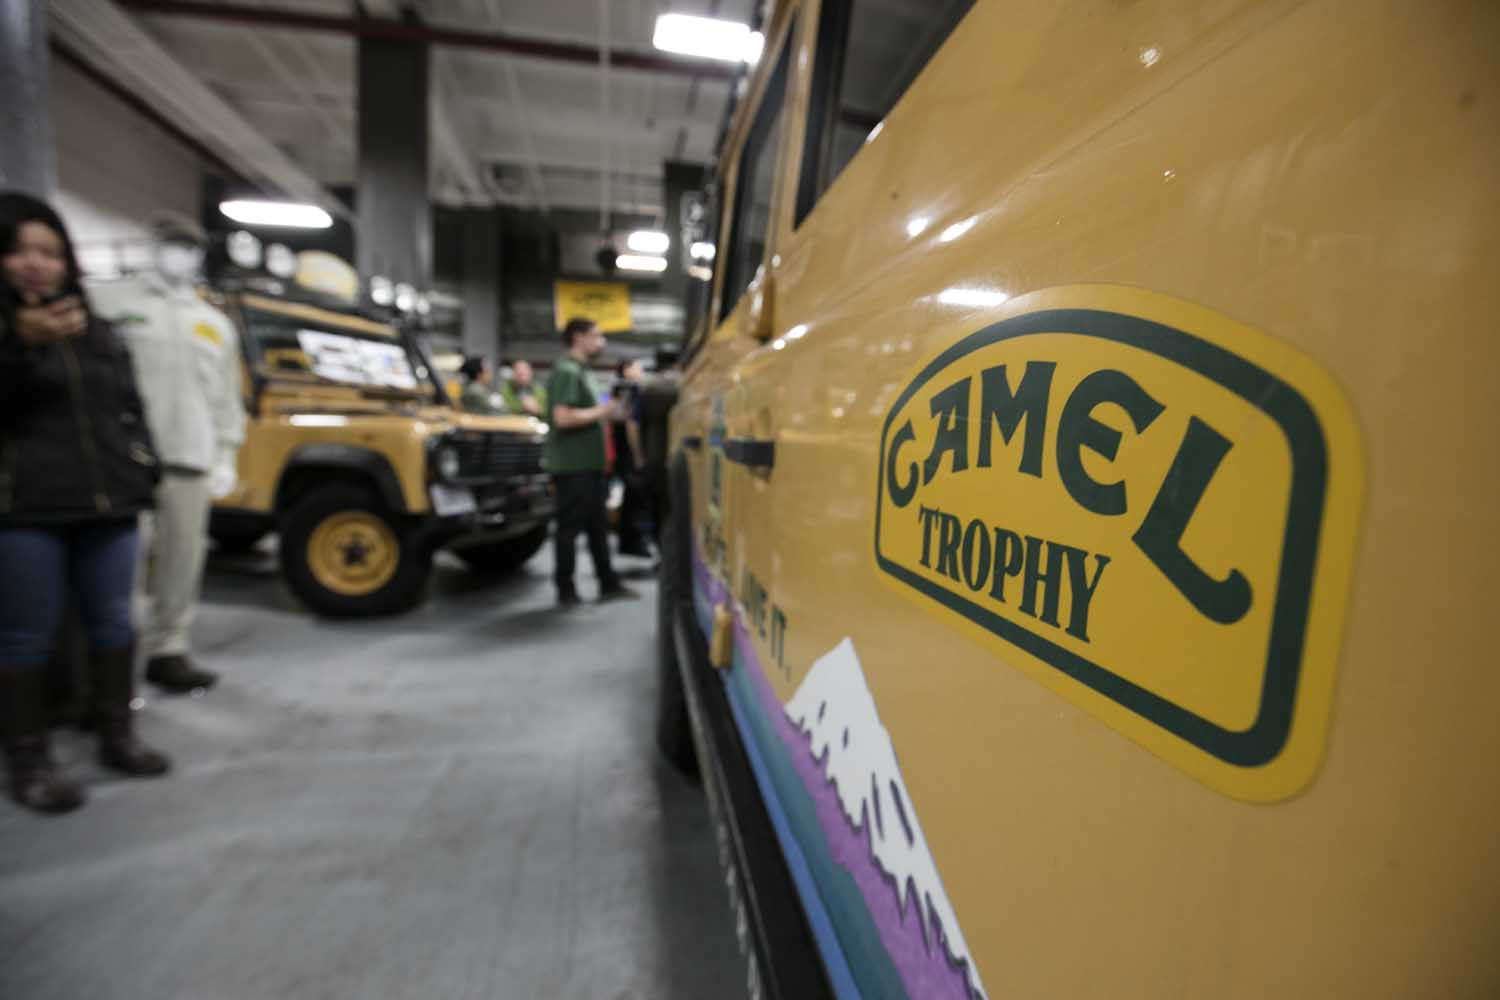 Return to Camel Trophy 007